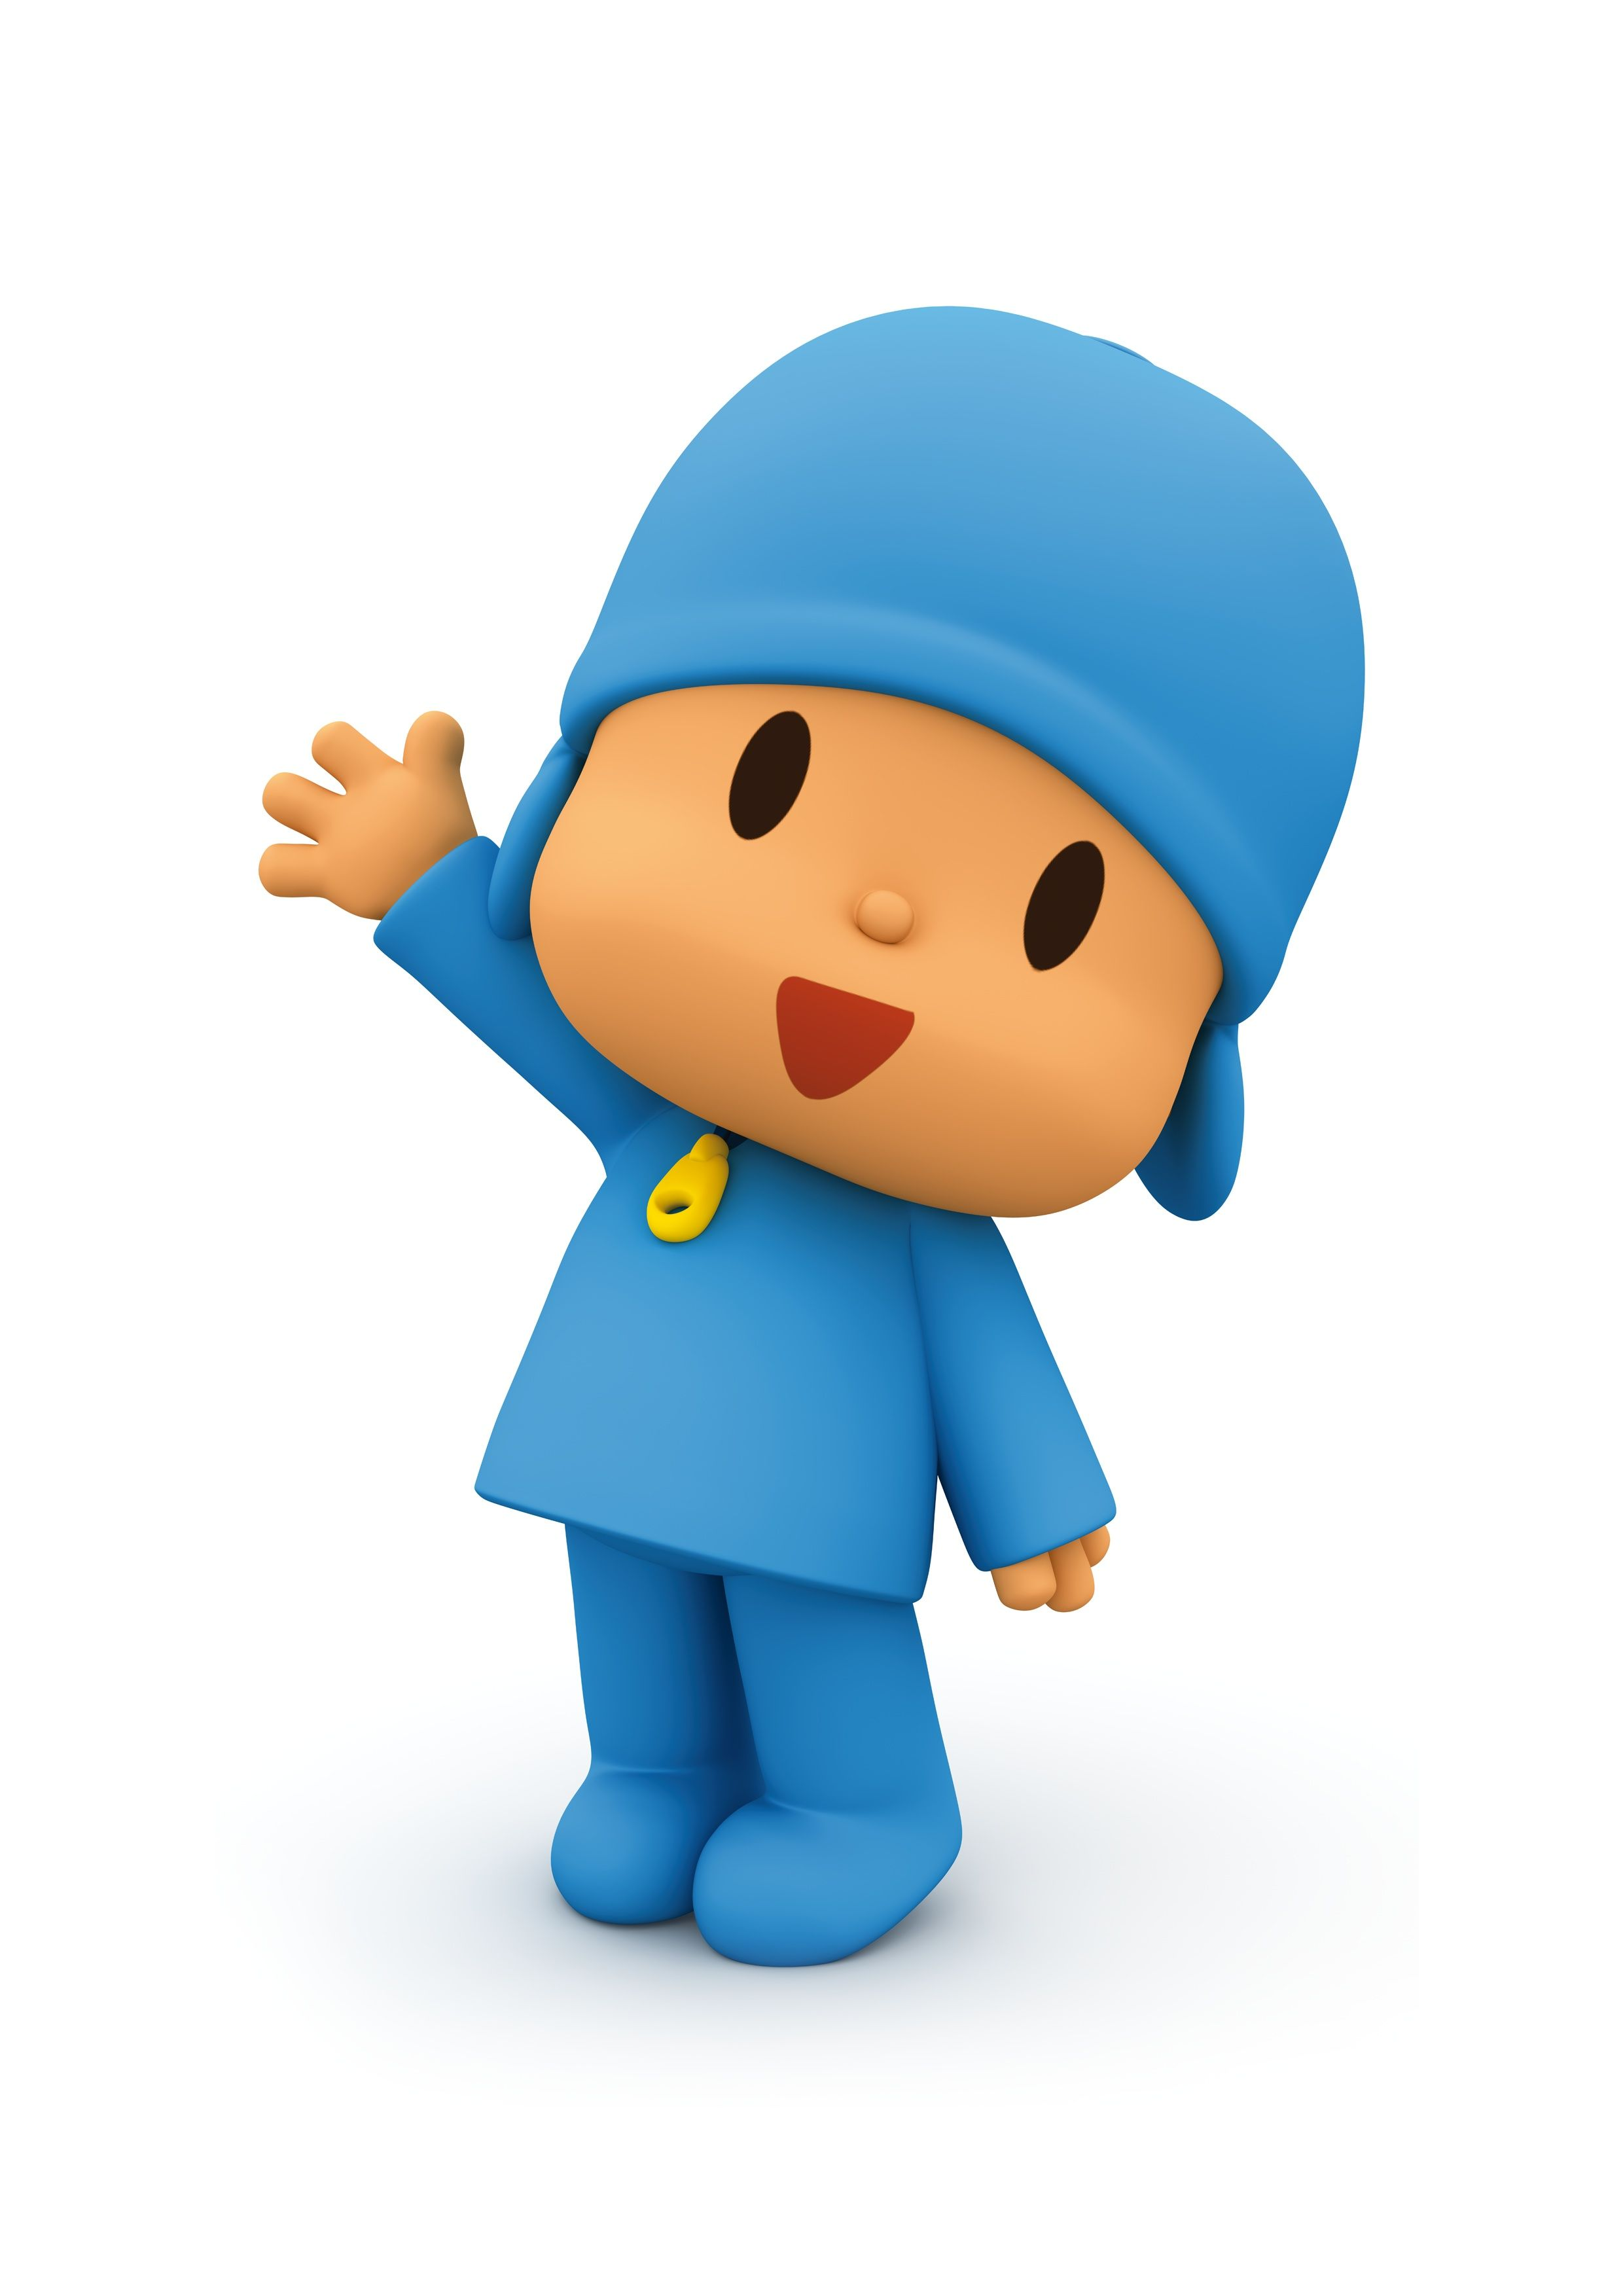 pocoyo | Enter and win a $200 Pocoyo gift basket for the holidays! - A